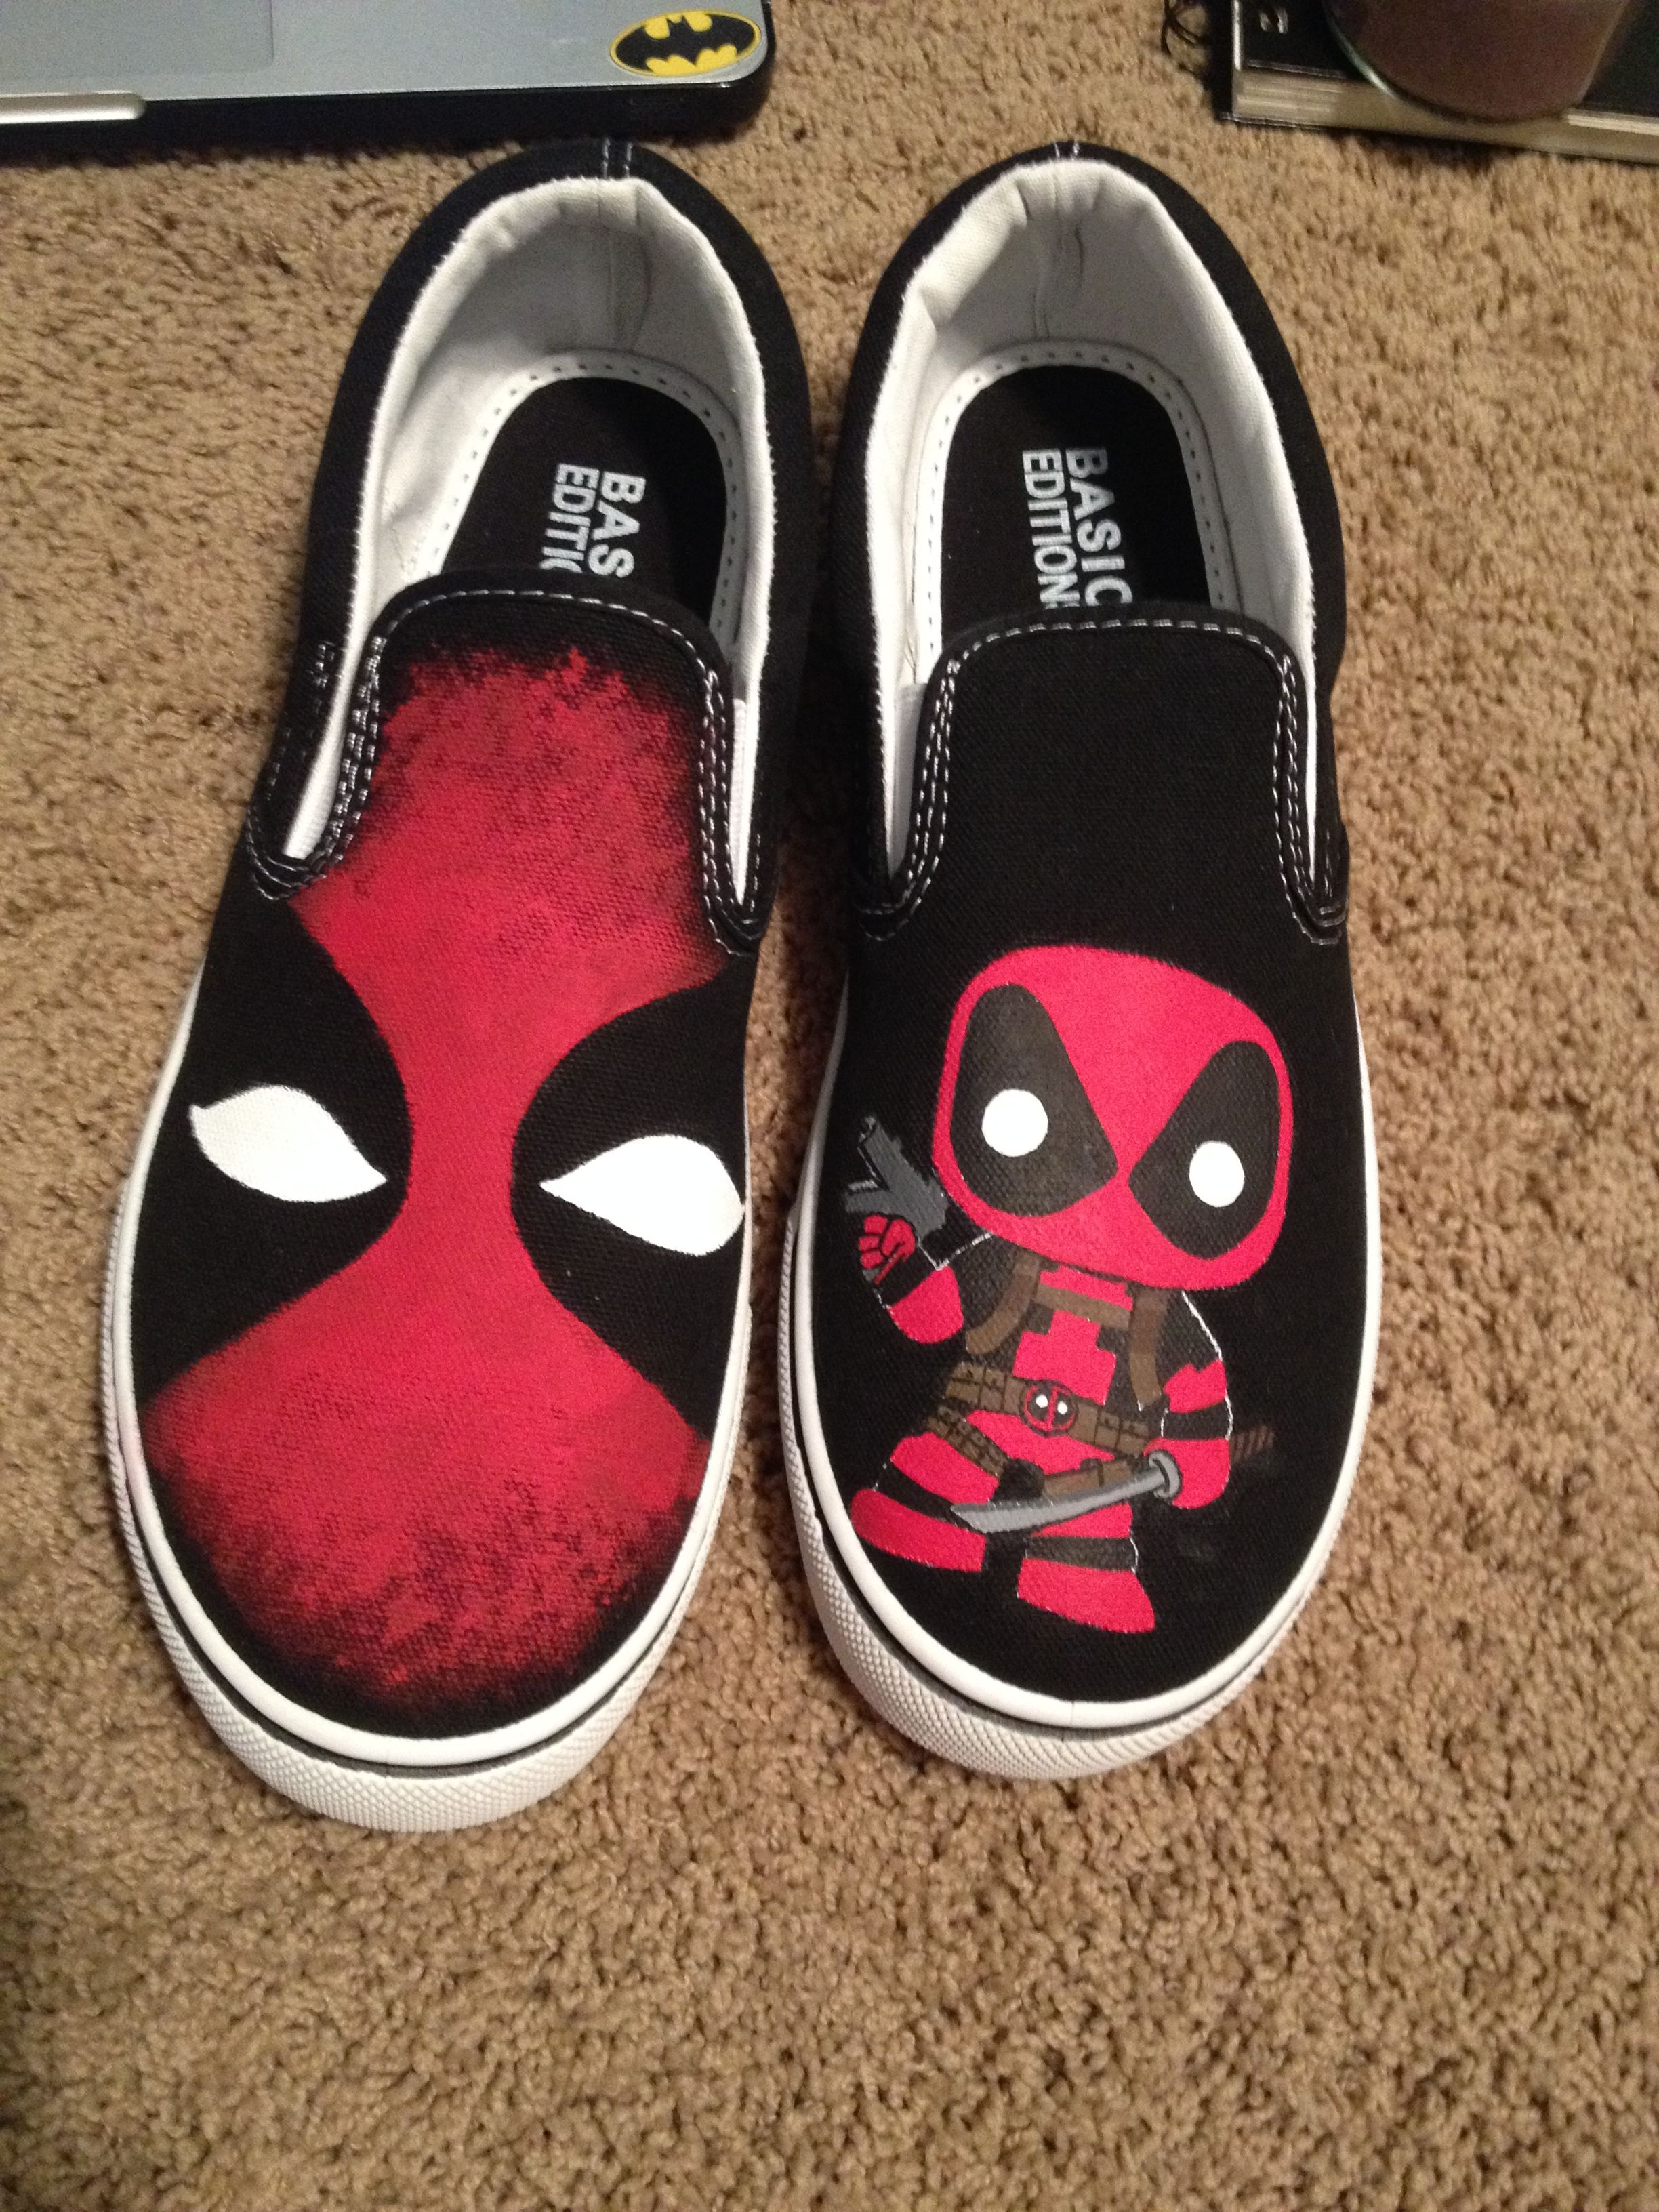 3867fefb2c Deadpool kind of counts as pure awesomeness right ! Etsy .com shop Artscribbles